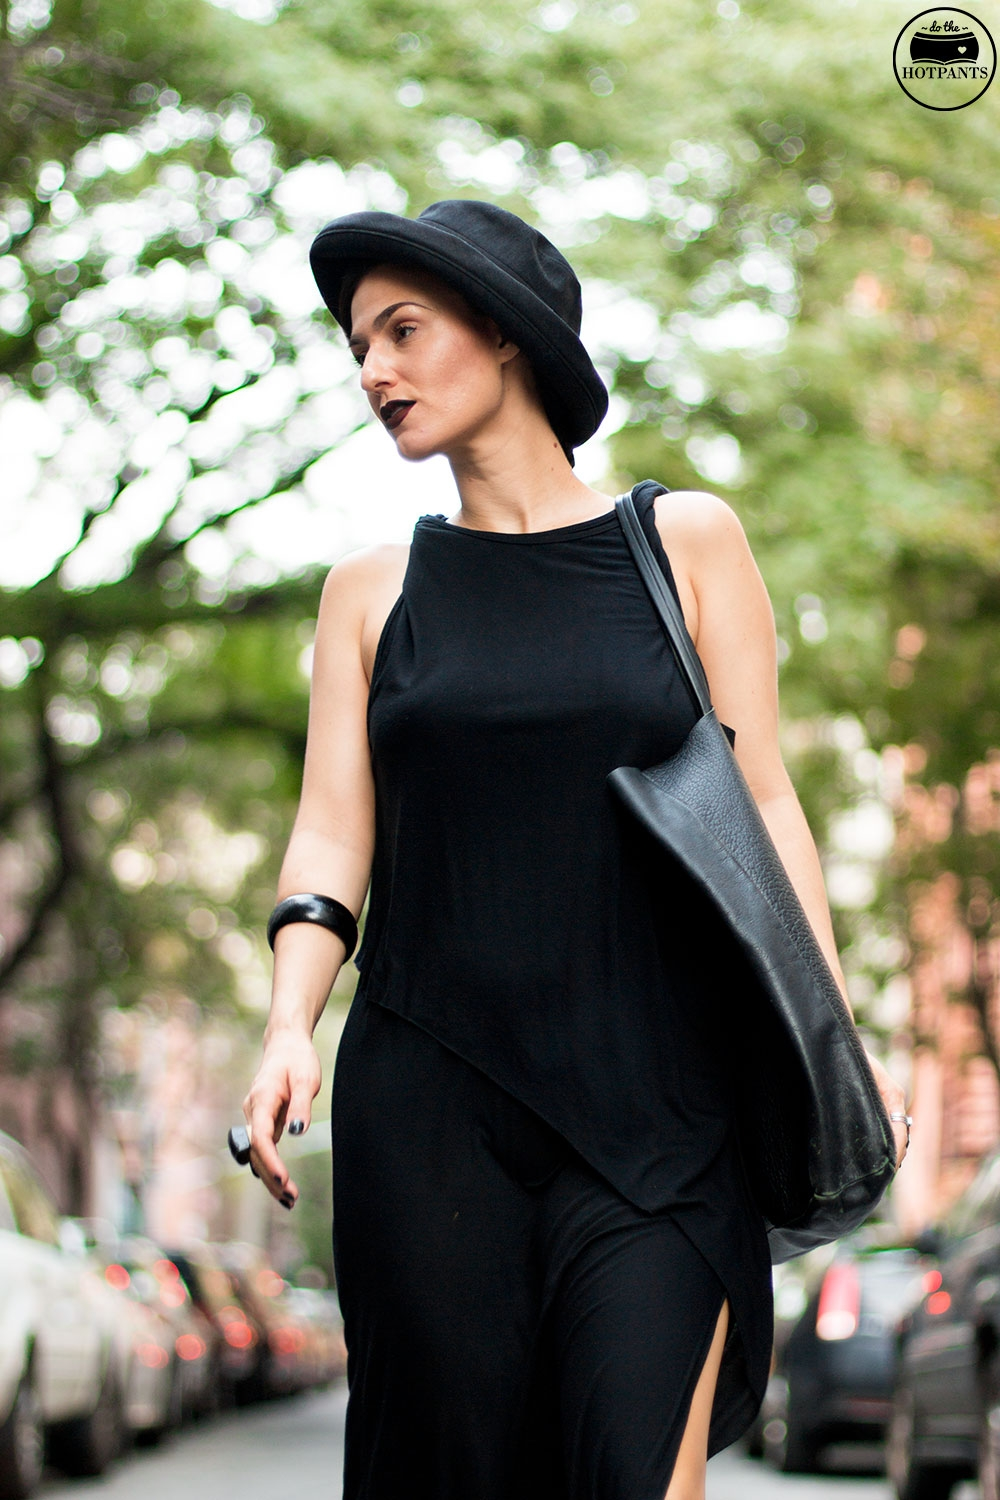 Do The Hotpants Dana Suchow Goth Streetstyle Fashion Black Maxi Dress Gothic Style MAC Dark Lipstick Fall Look IMG_2149